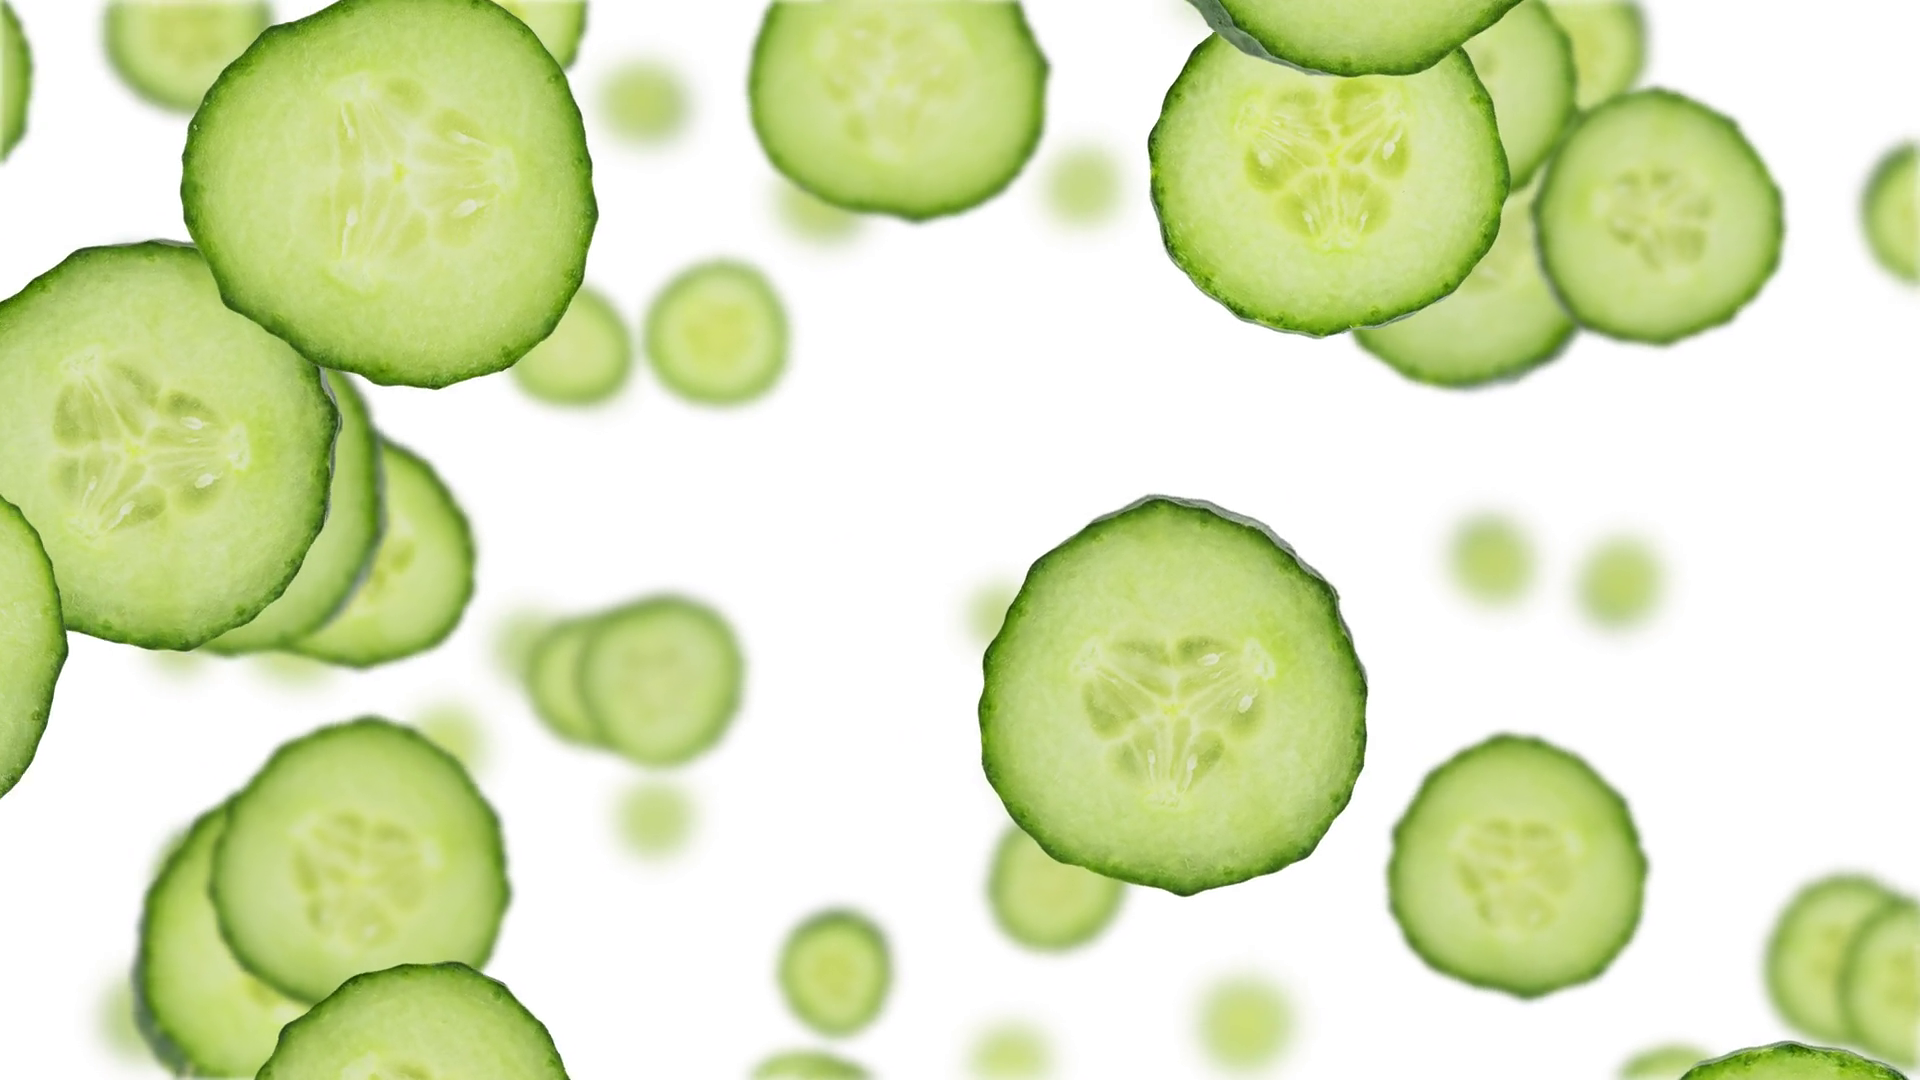 Cucumber slices falling down on white background (45 degrees ...